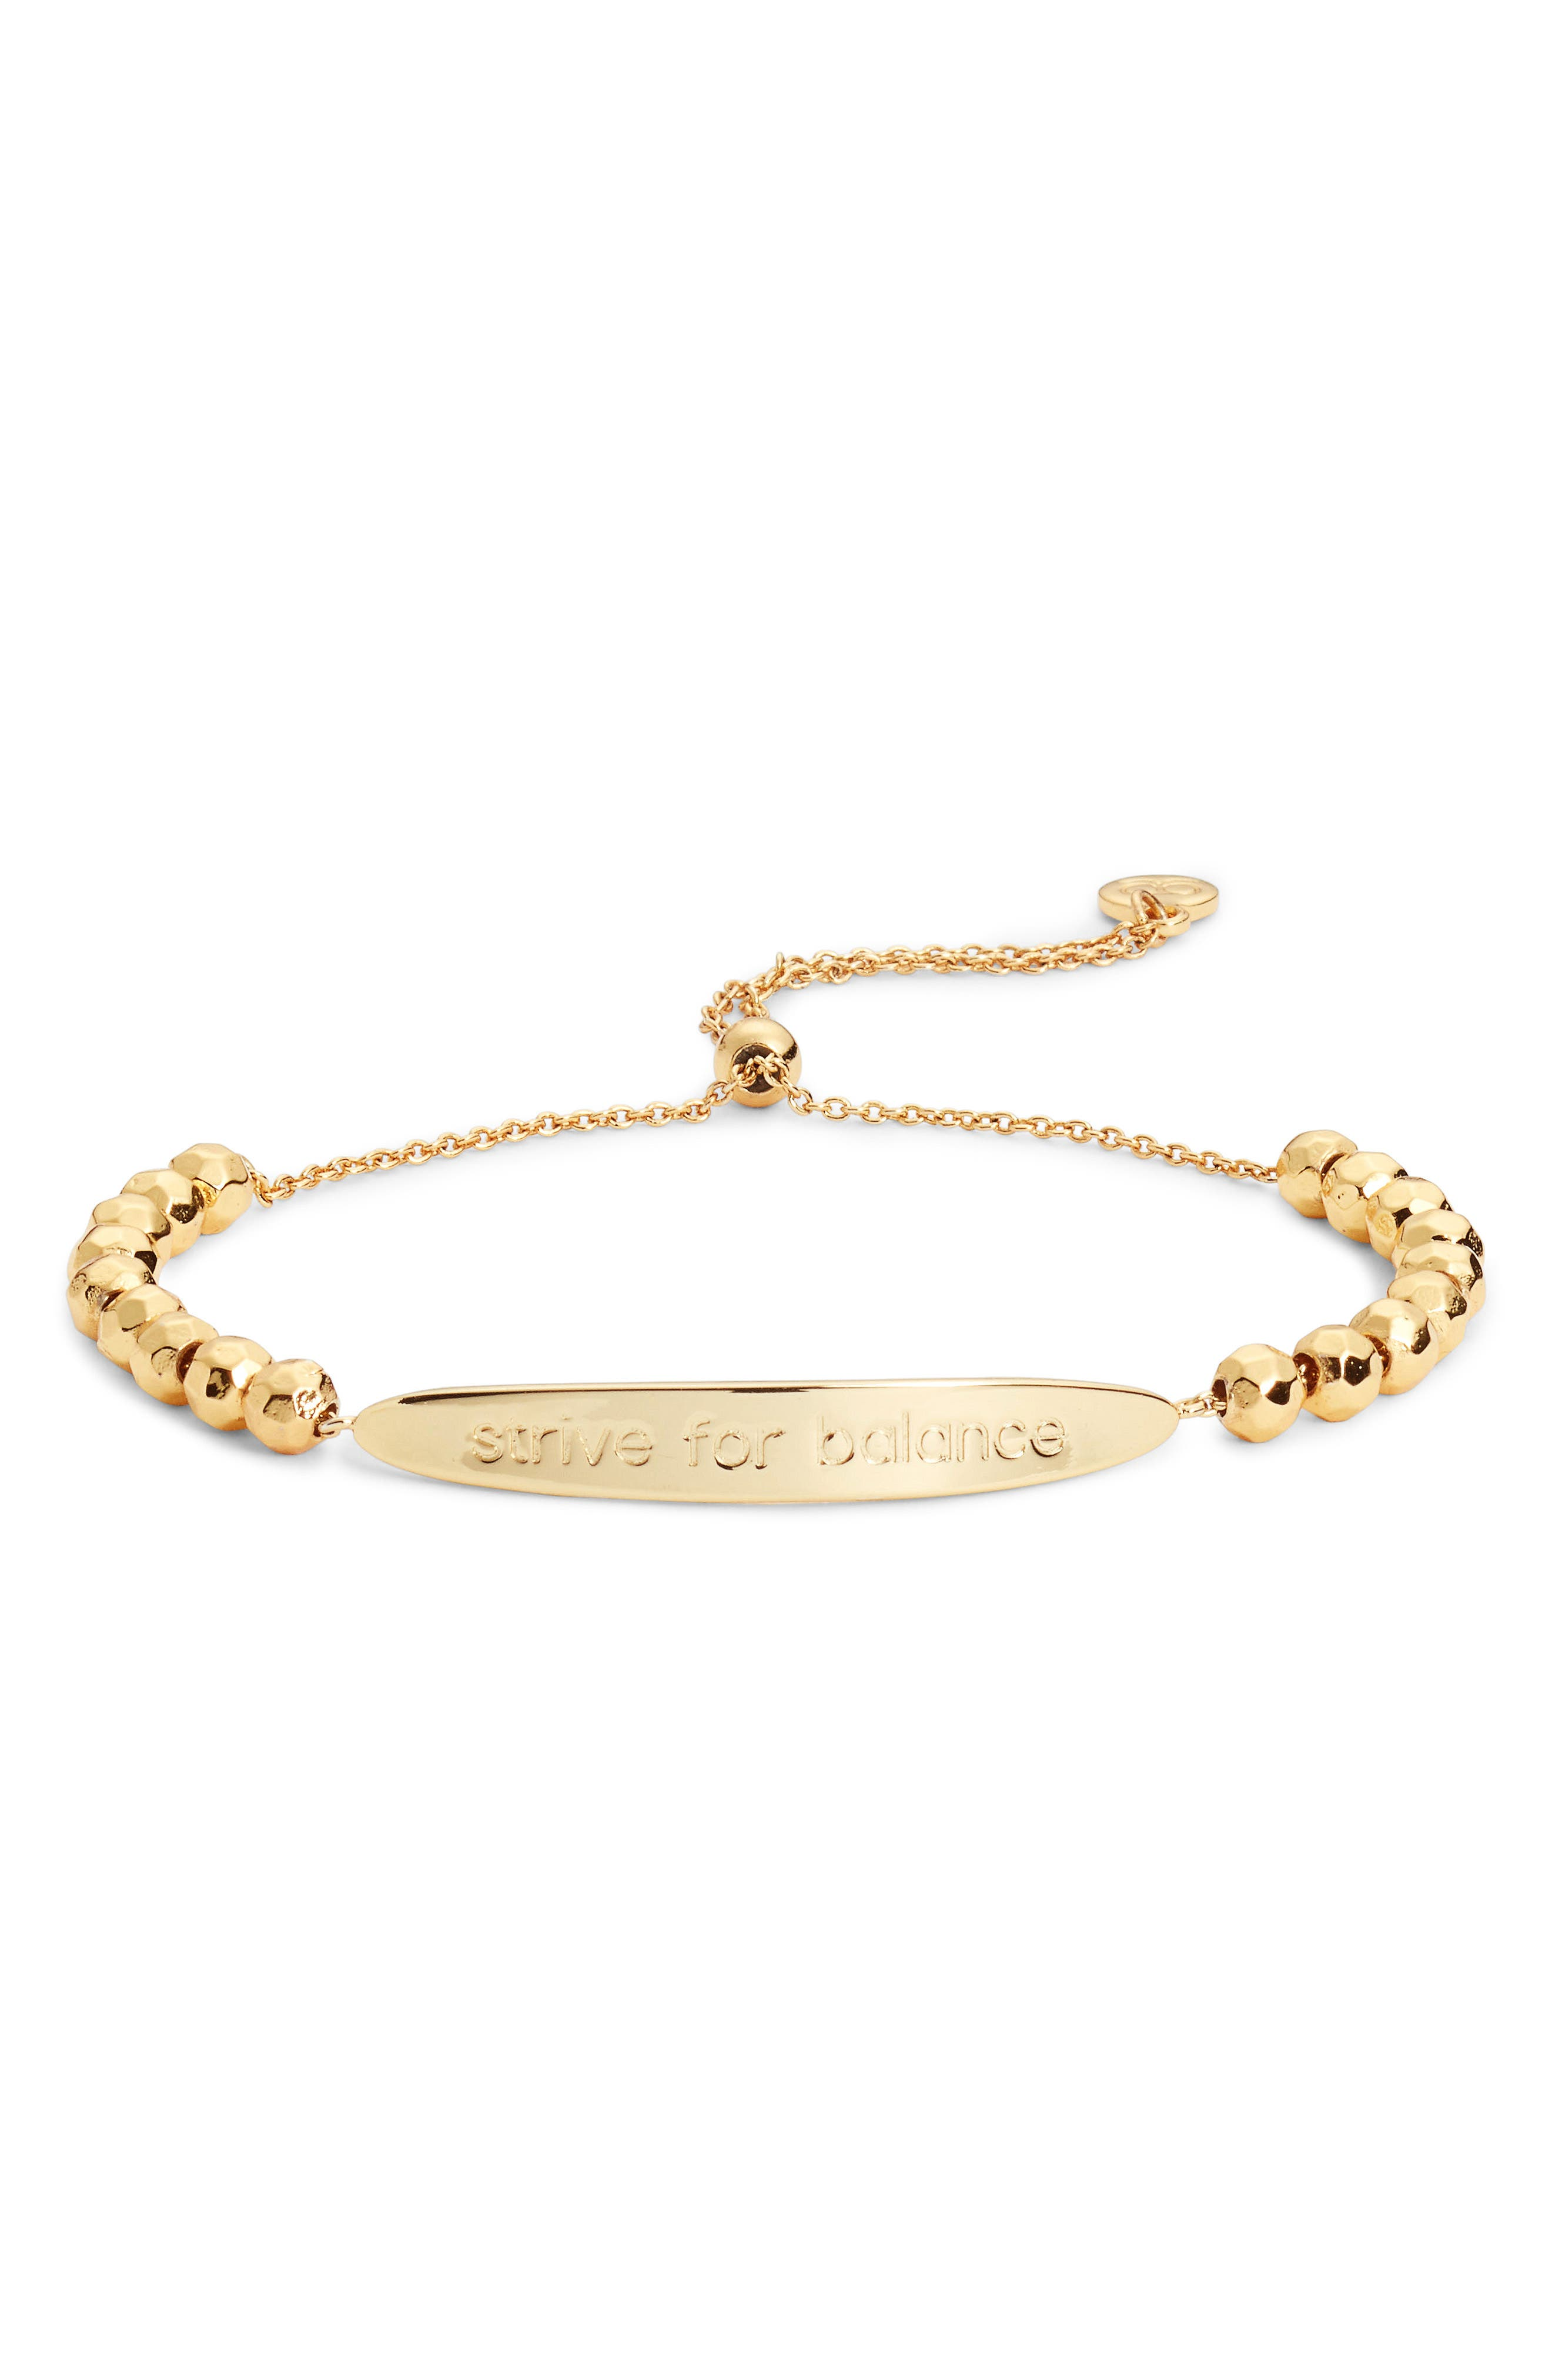 Power Intention Strive For Balance Bracelet,                         Main,                         color, Gold